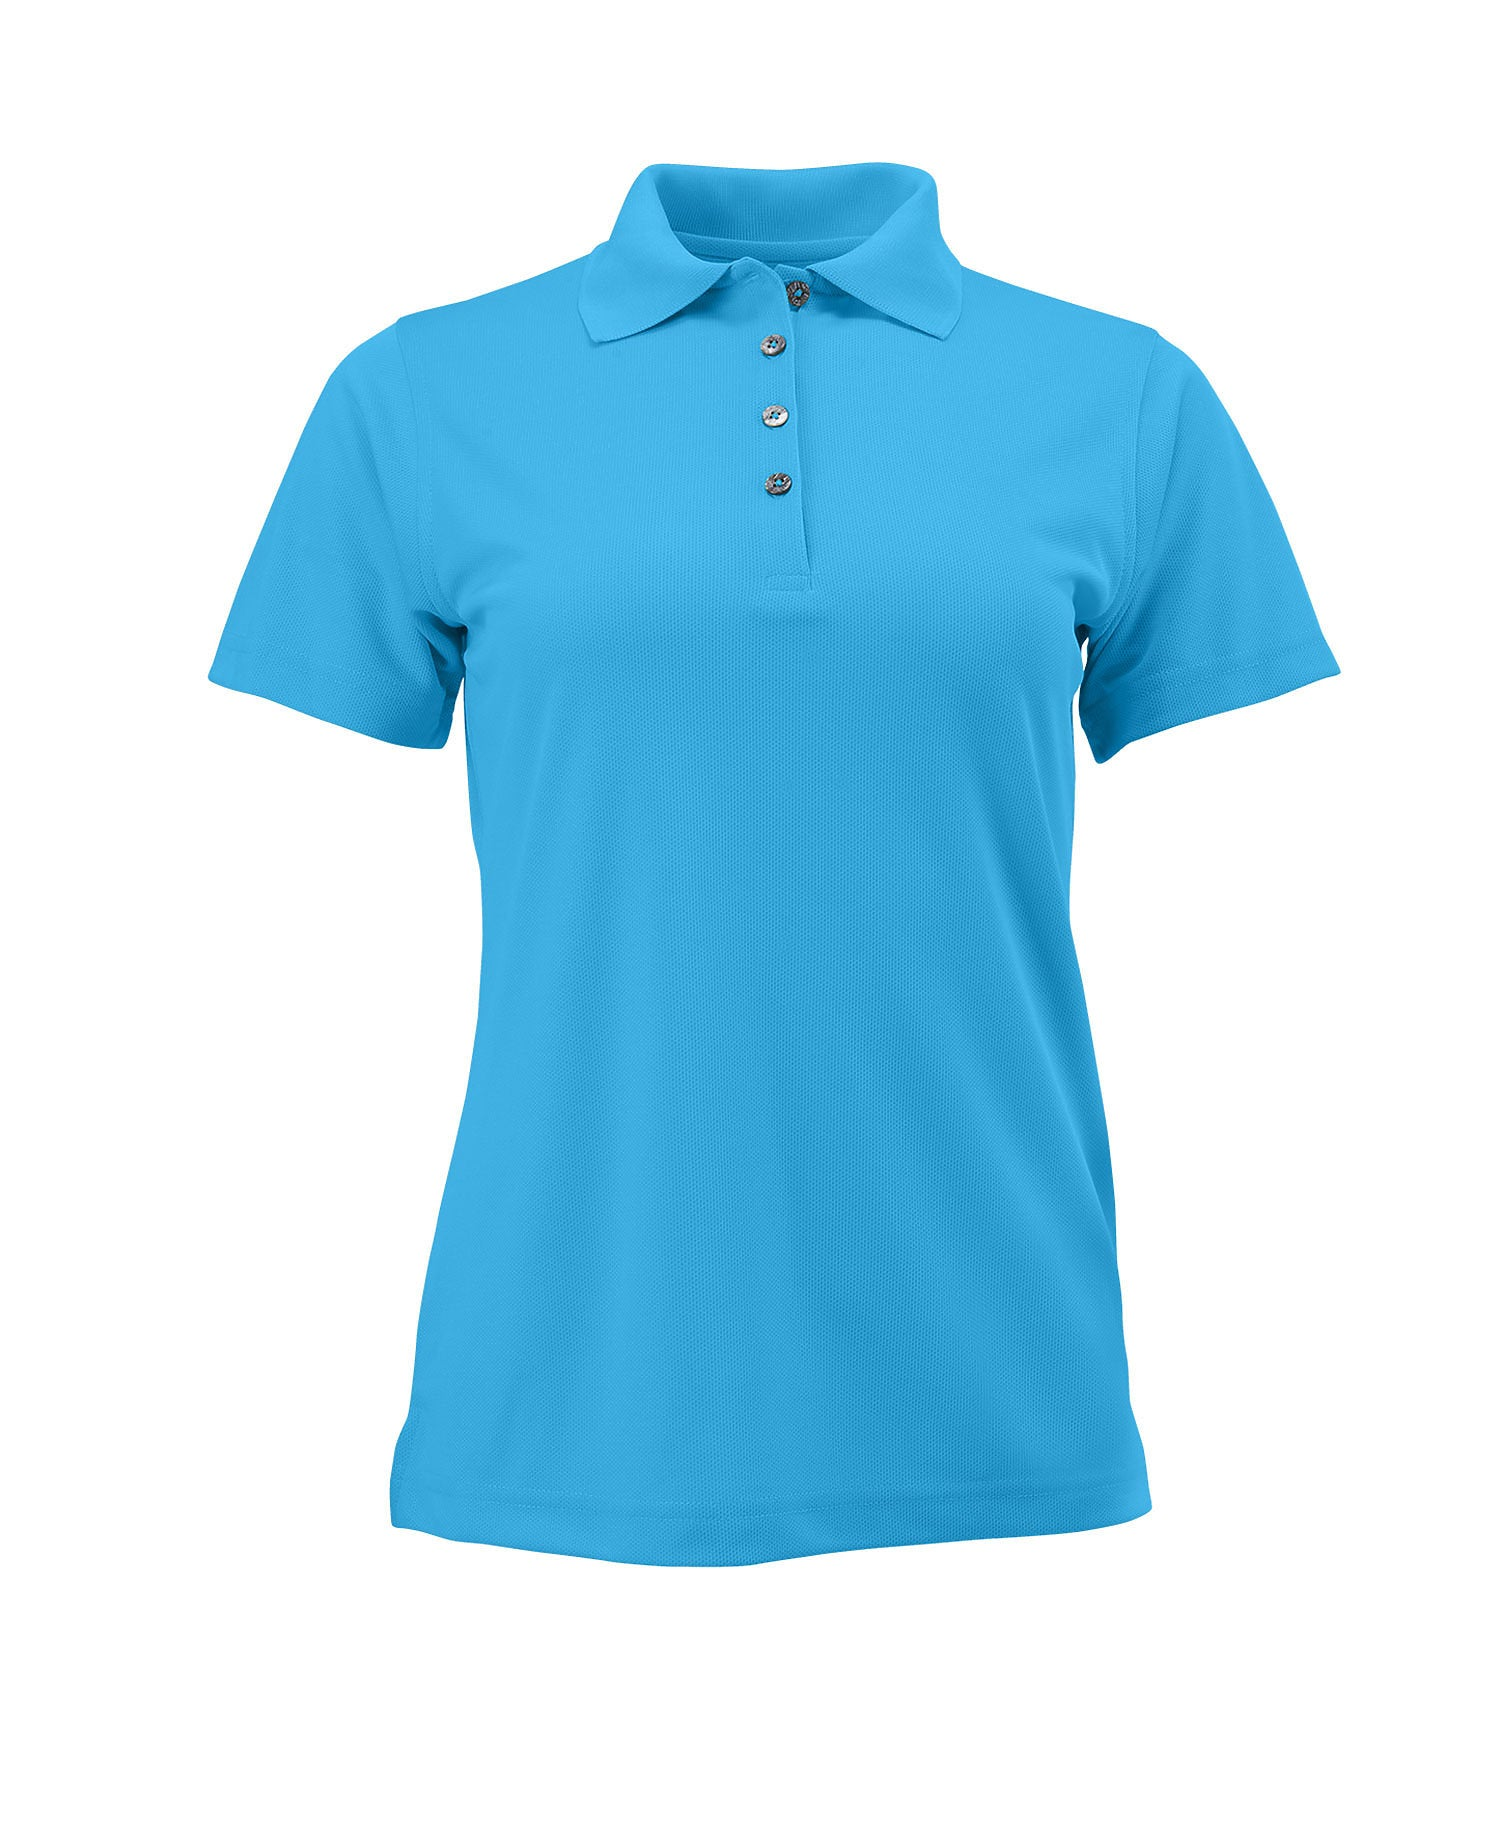 Paragon 104 Ladies Solid Mesh Polo - Turquoise